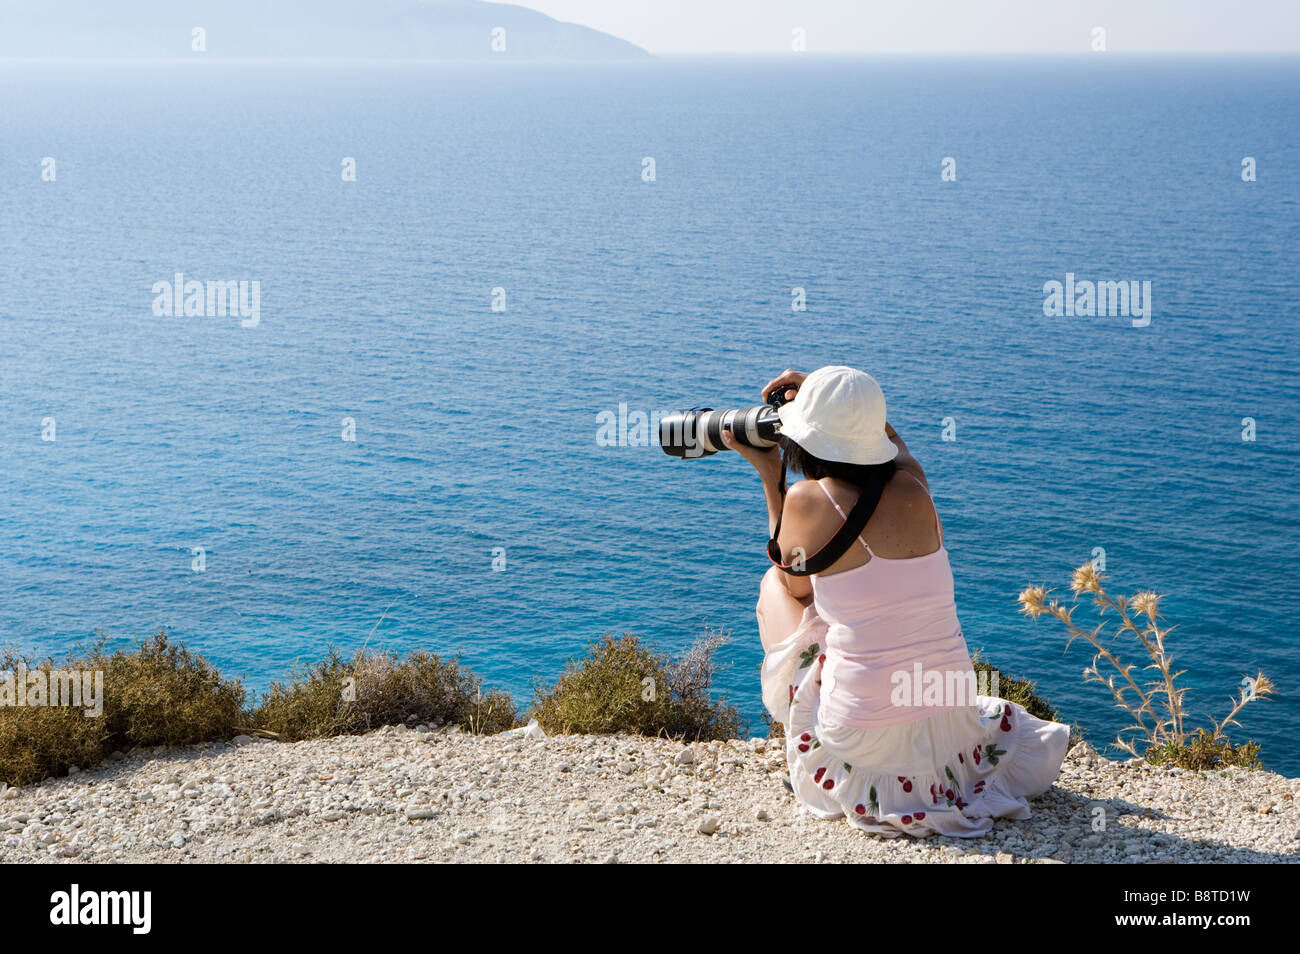 Lady photographer at Mirtos beach, Kefalonia, Greece, Europe - Stock Image